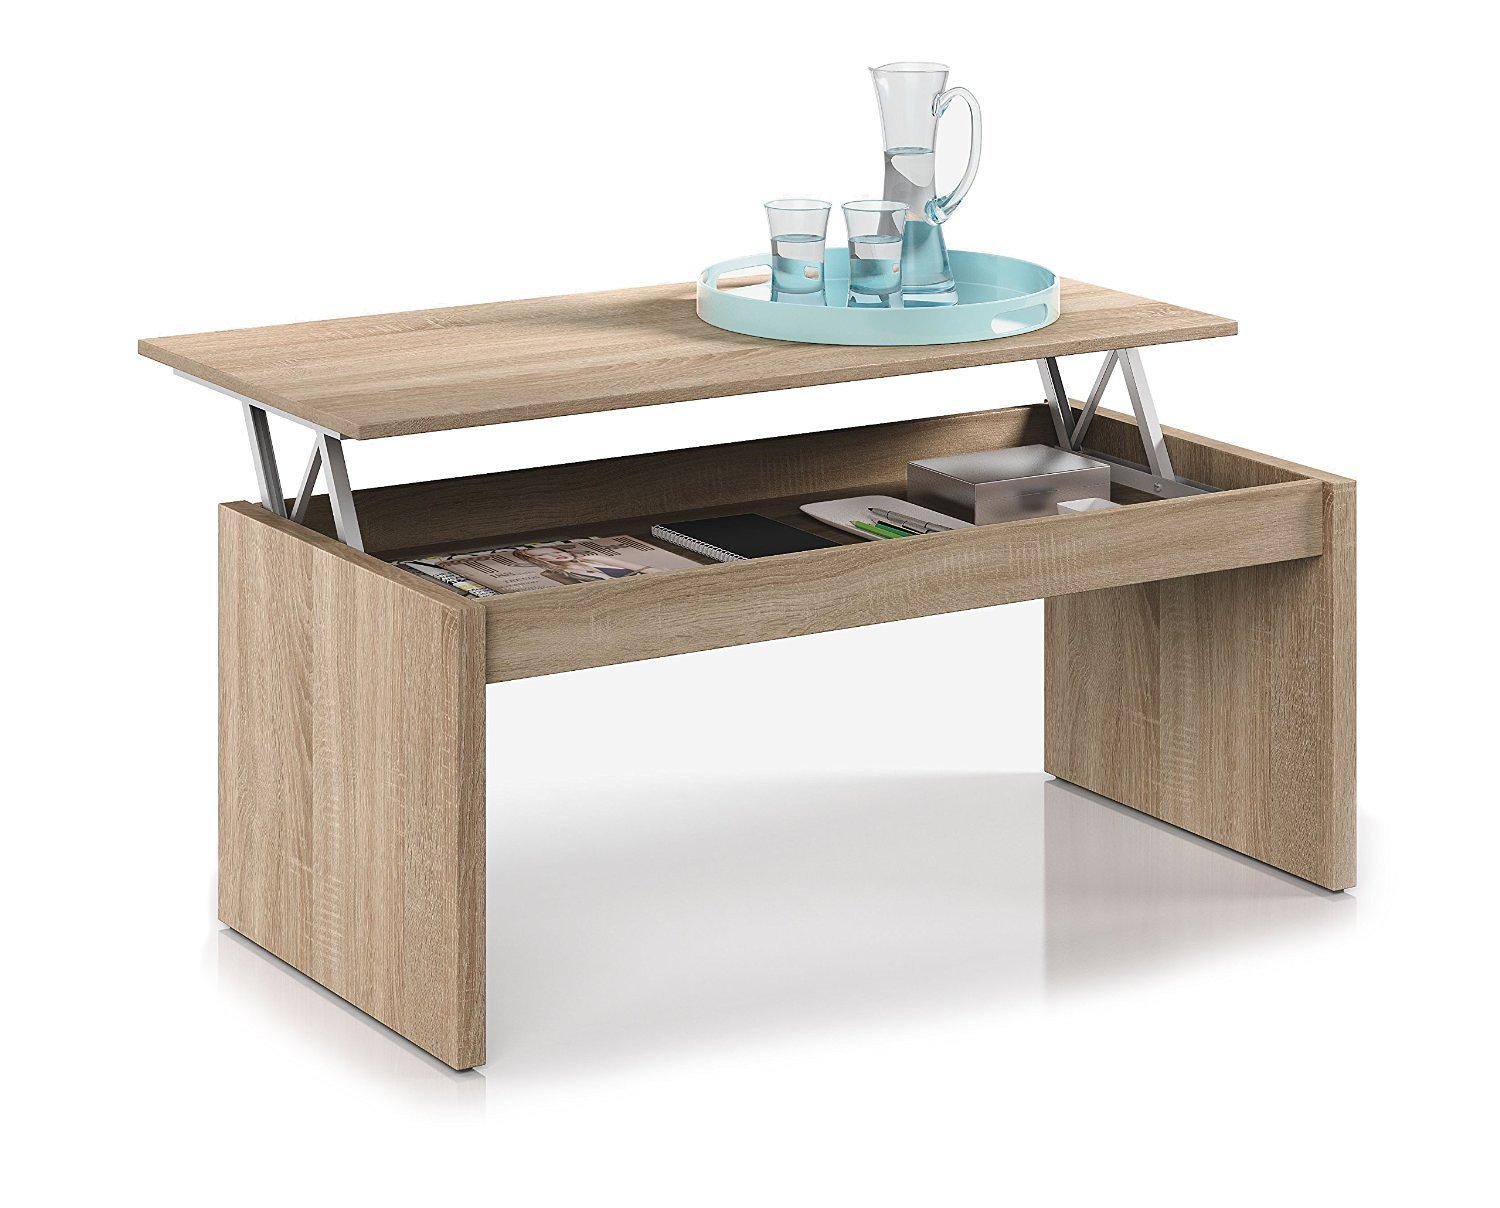 Fabulous habitdesign f table basse chne naturel avec for Table basse hauteur 50 cm